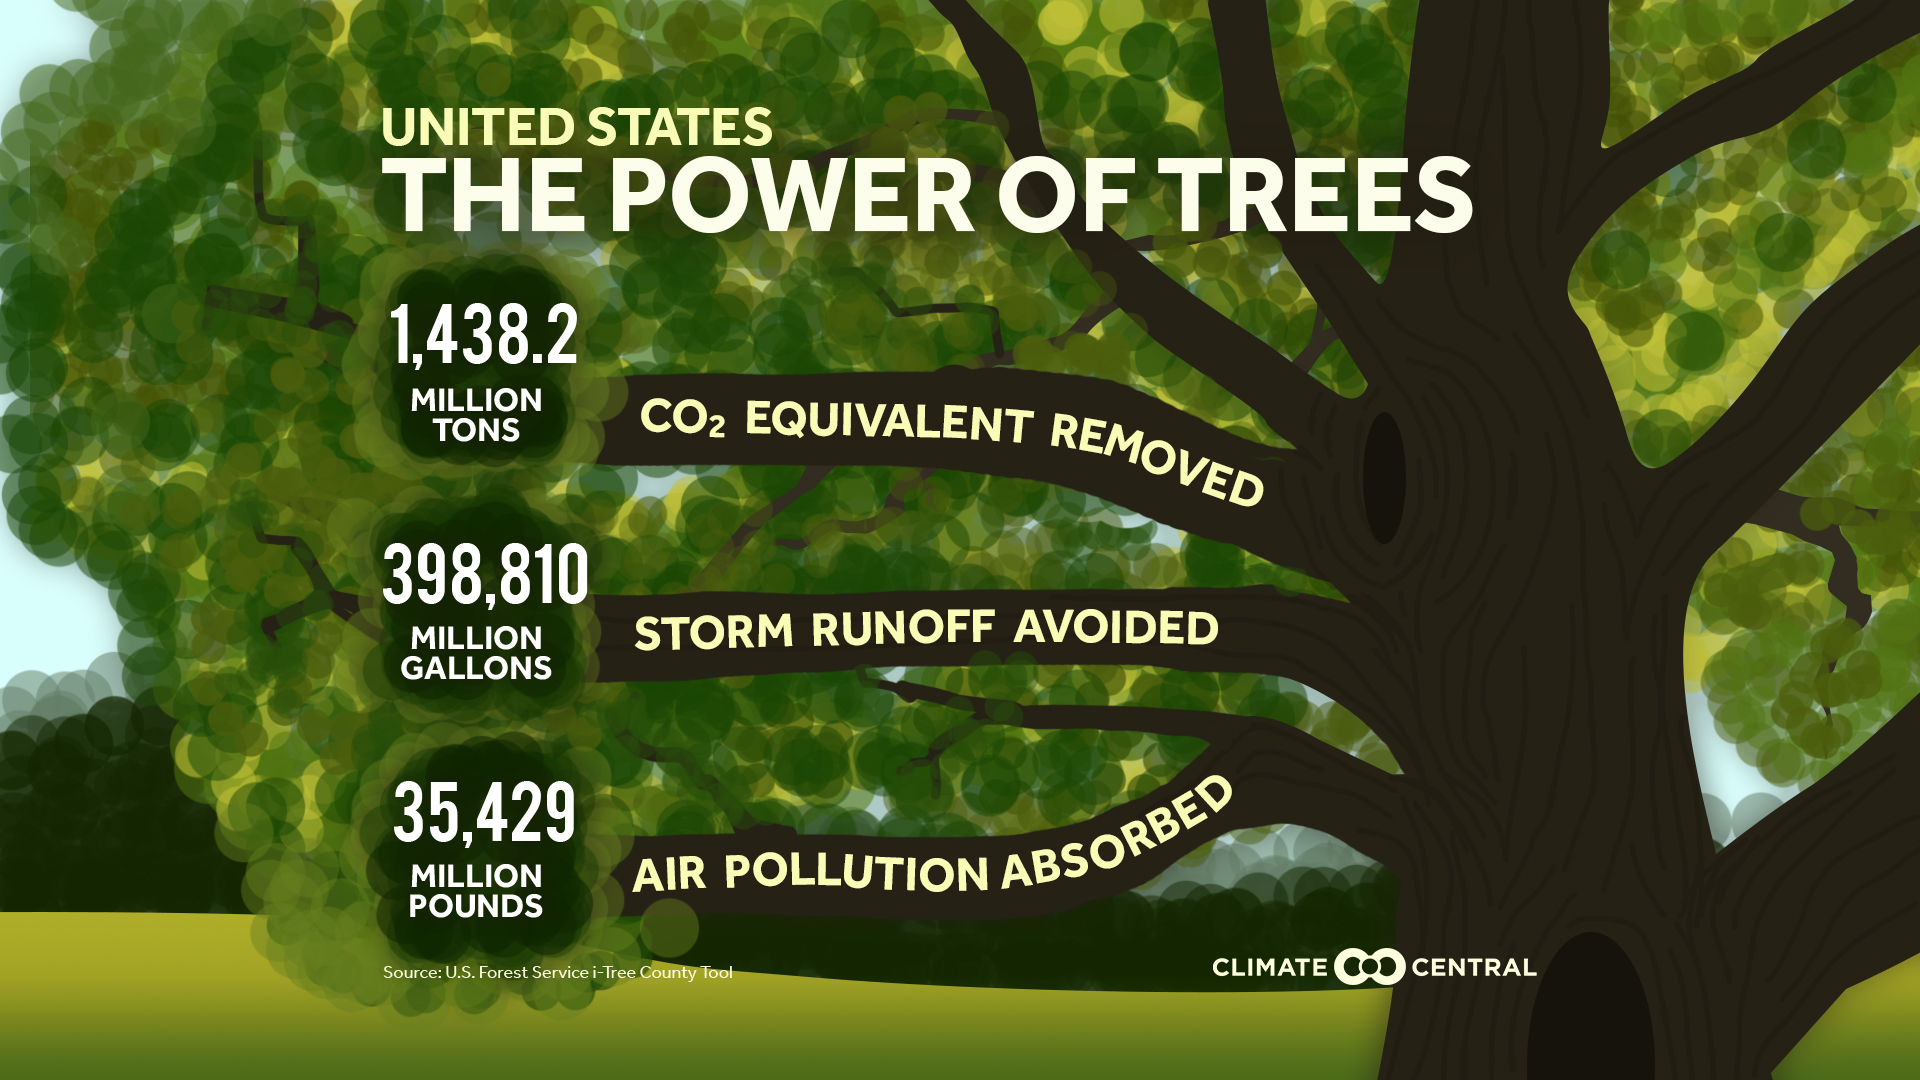 How To Reduse Pollution The Widespread Climate Benefits Of Trees Climate Central